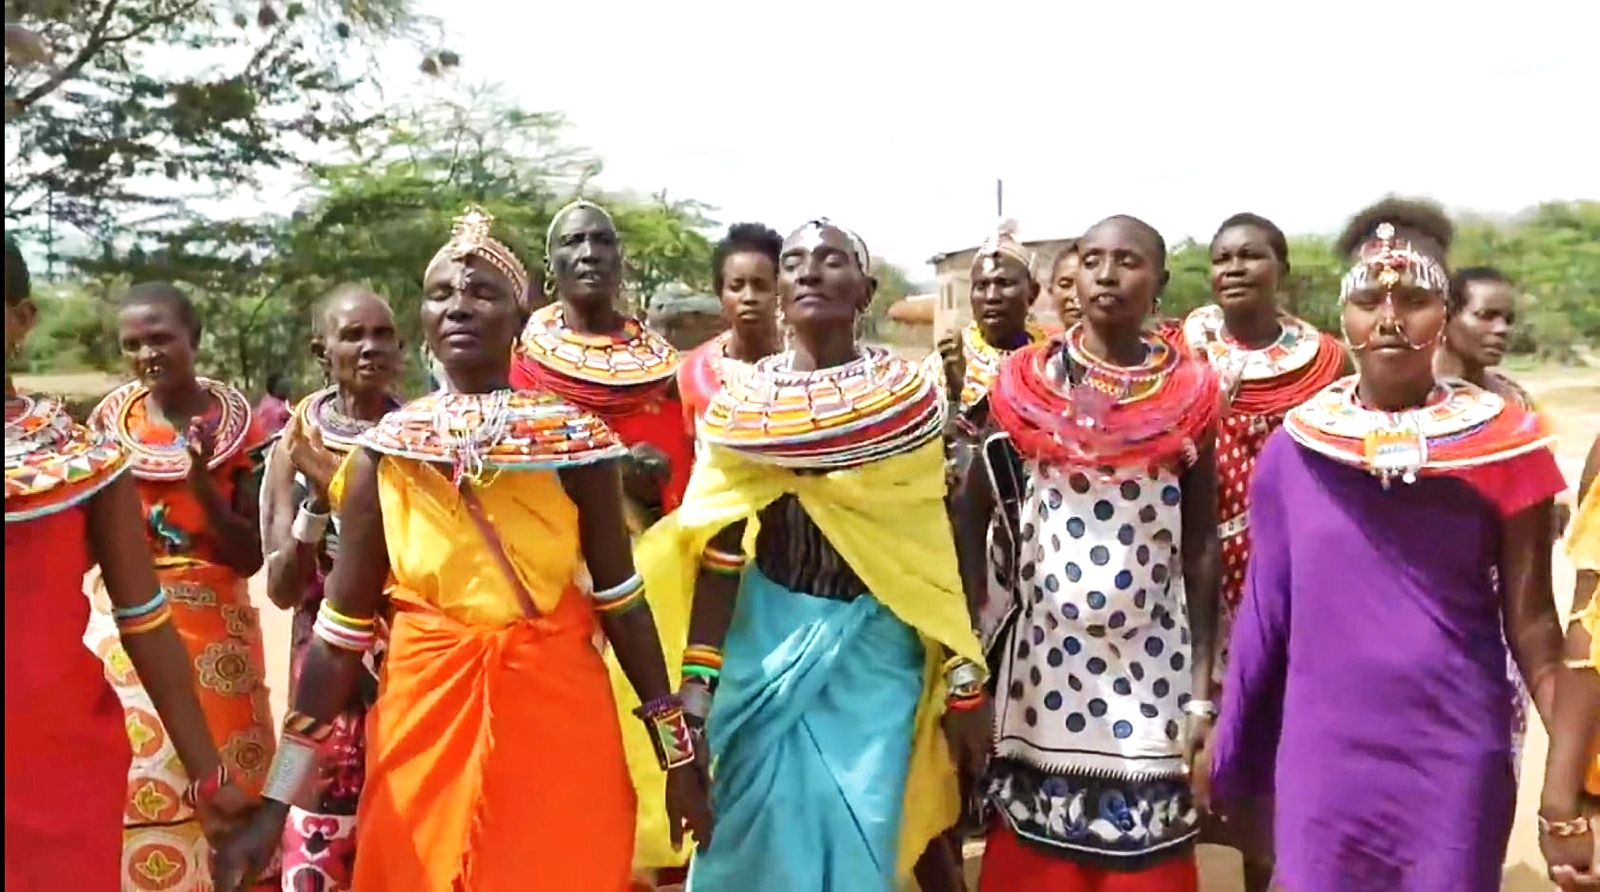 VIDEO: Saving Lives: Women-Only Village In Kenya Restores Rights, Secures Future